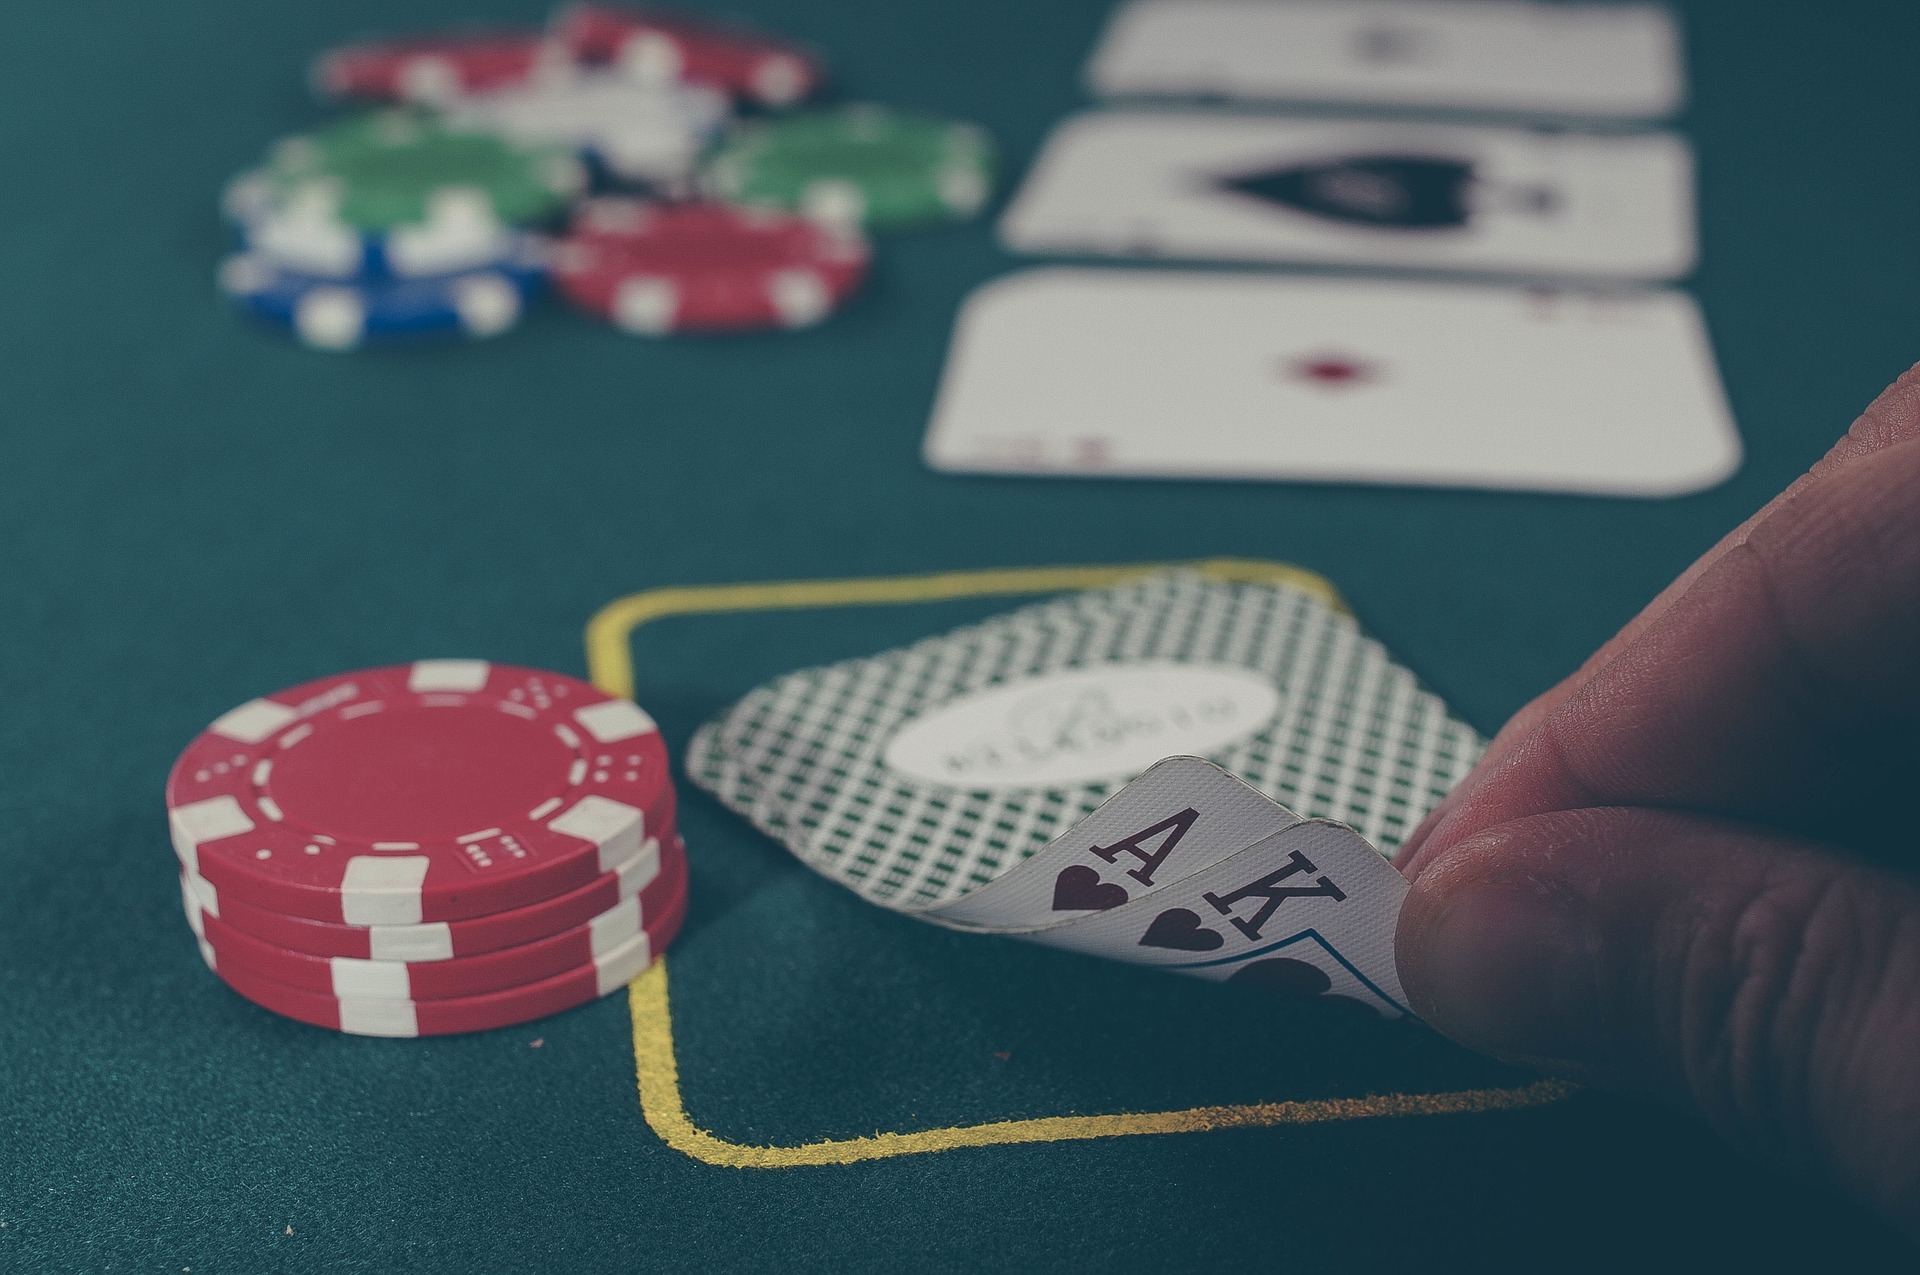 Feds: Gambling Fine, But Investing Too Risky